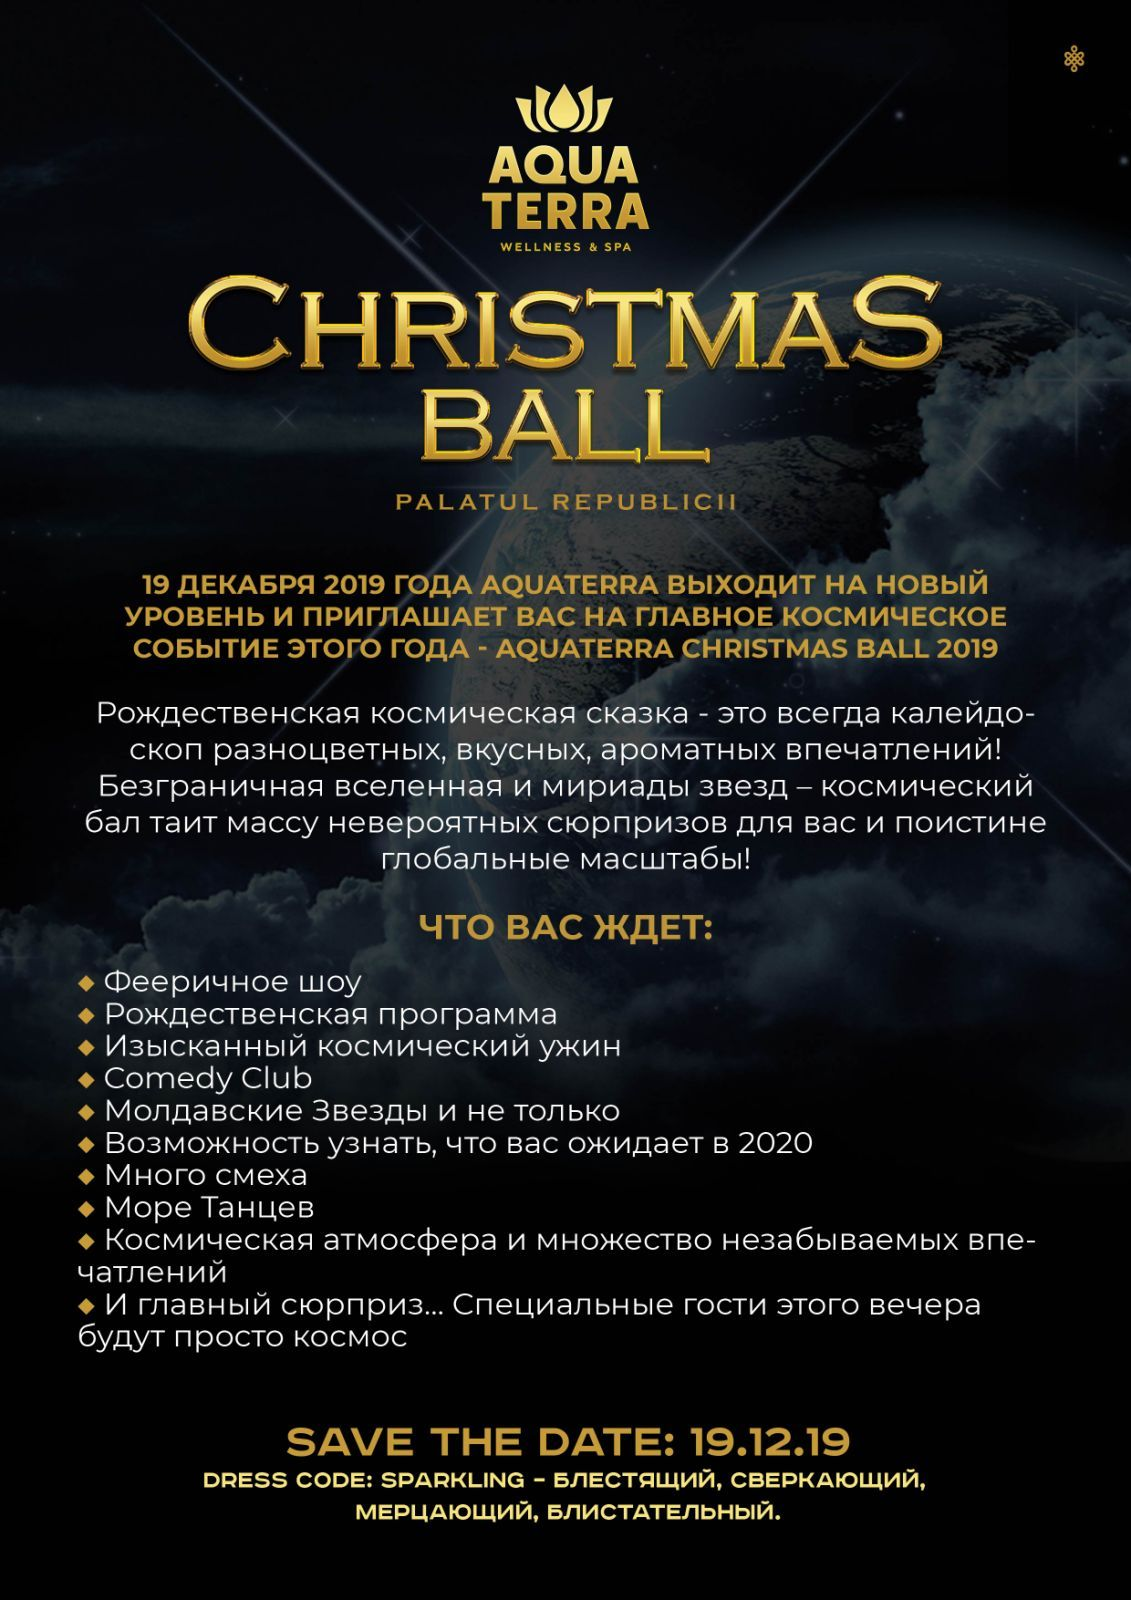 Aquaterra Christmas Ball 2019